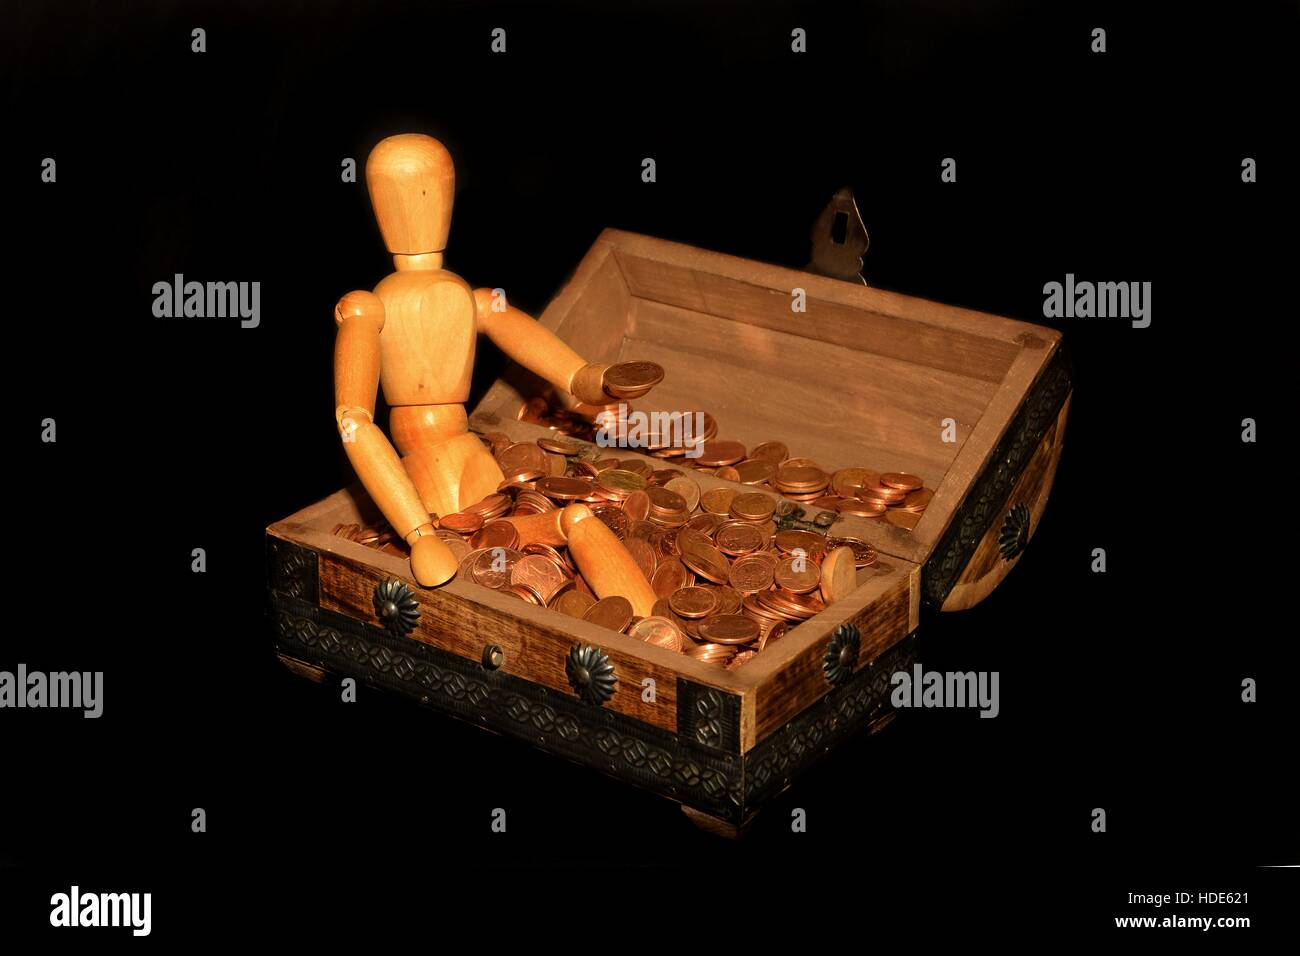 Wooden figure sitting in a wooden box with money, coin on the hand and with dark background - Stock Image